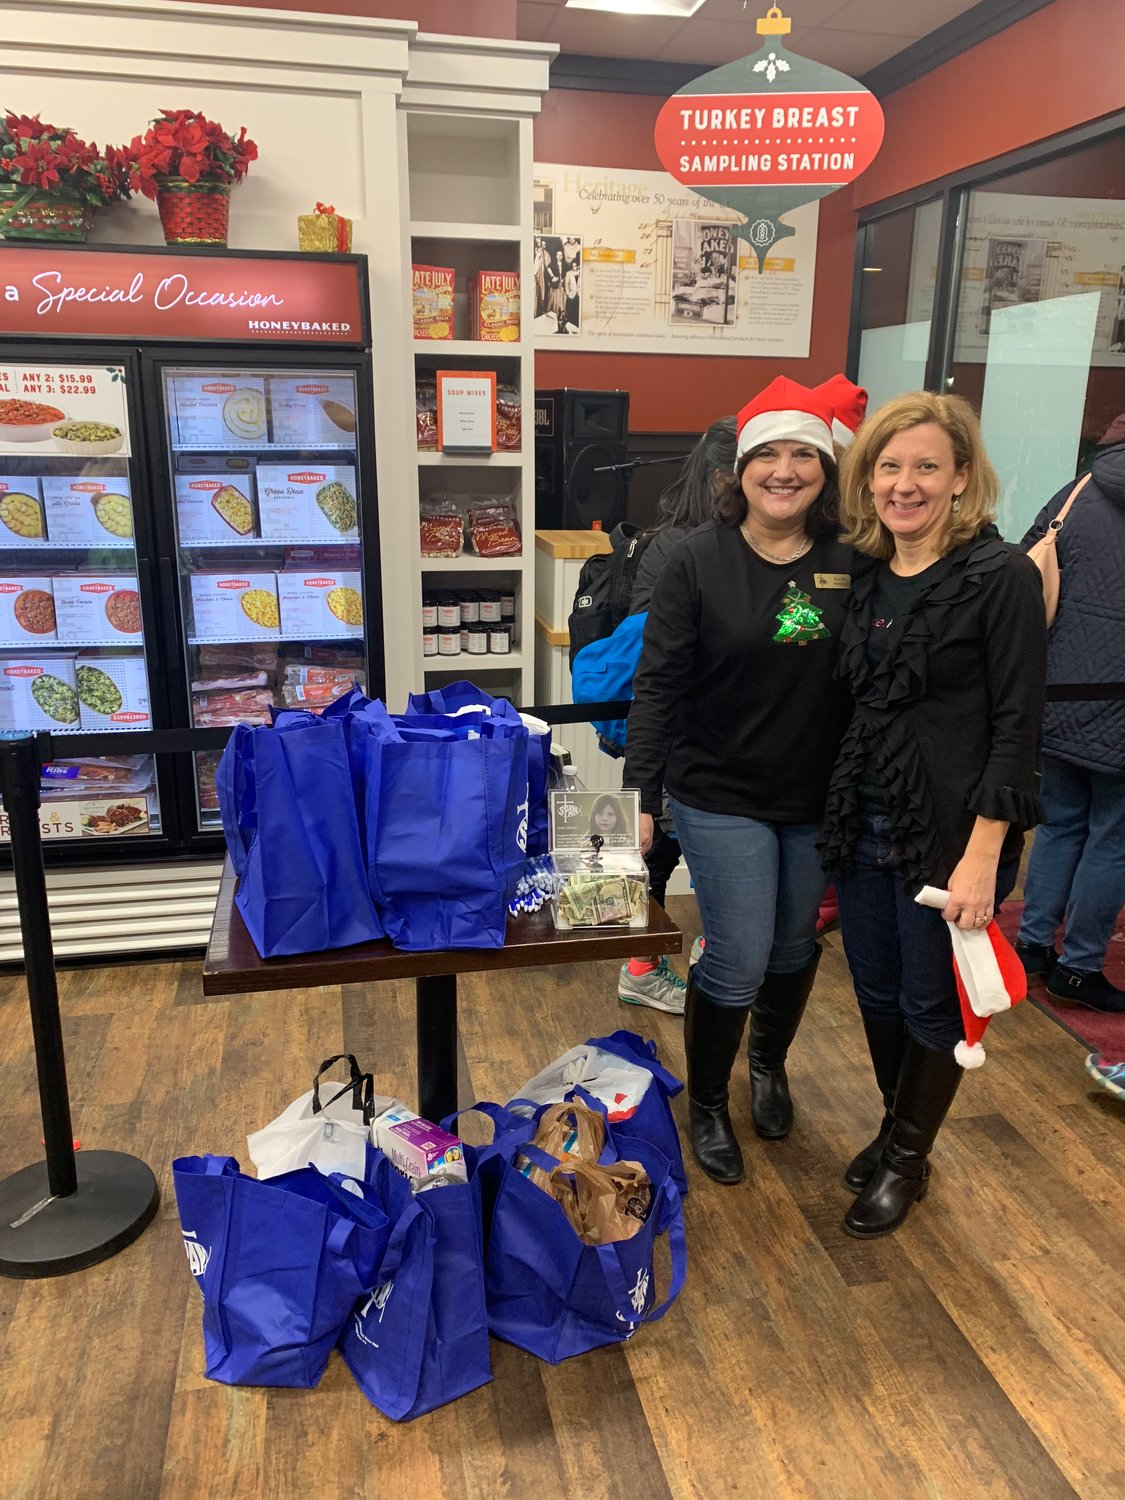 (L-R) Ellen Kinsella, director of development, and Jennifer Pumphrey, director of operations, collected 10 bags of nonperishable food and $51 for SPAN.